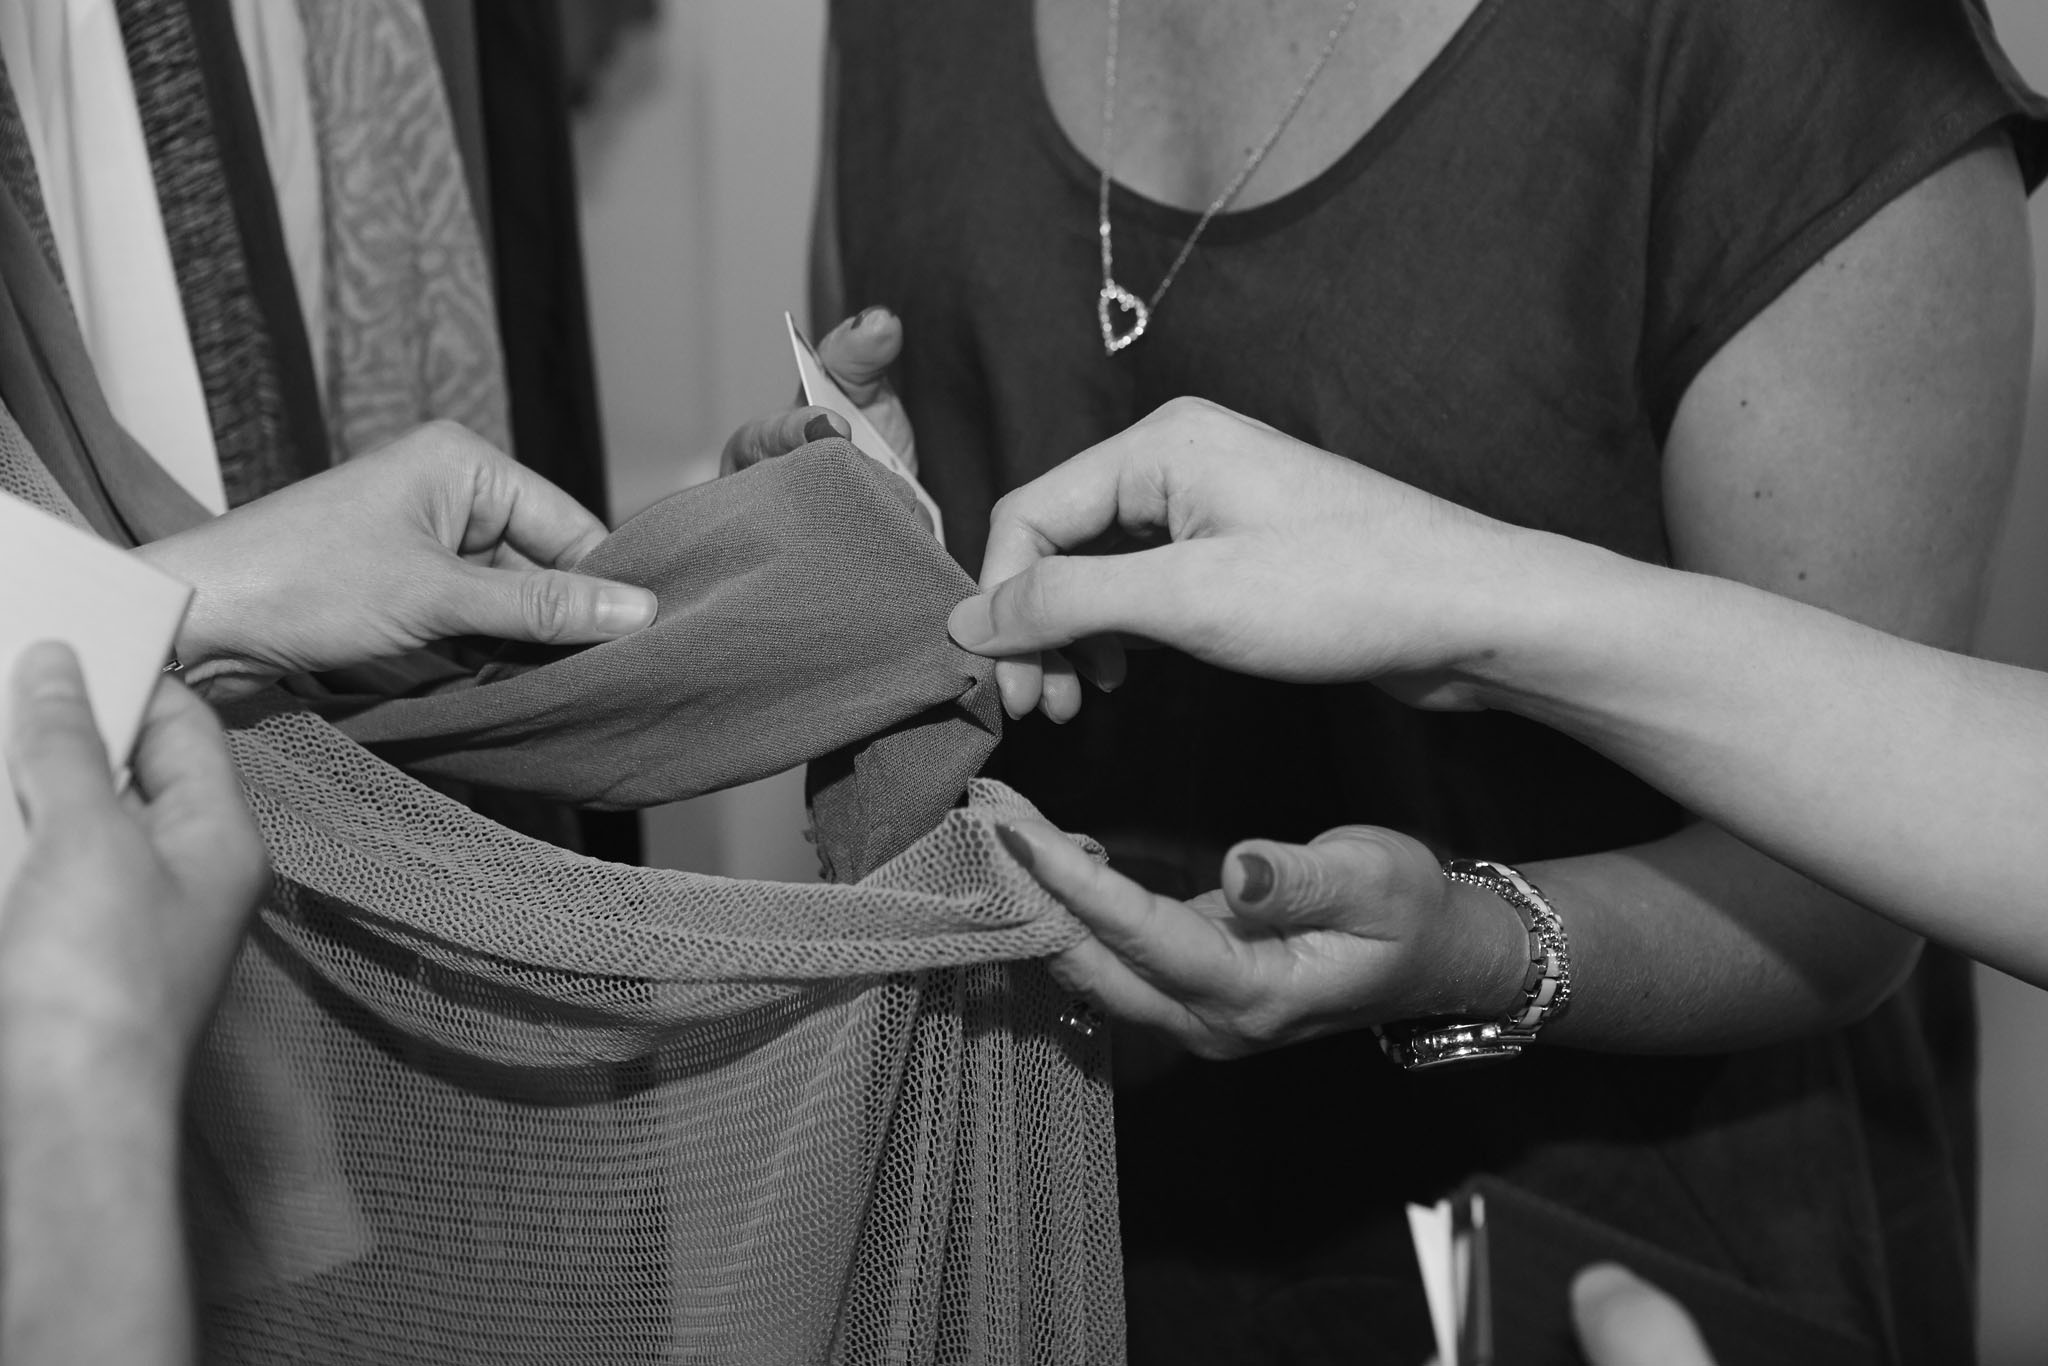 NS277_TFIA_CommonThreads_150824_0450_BW_HR.jpg